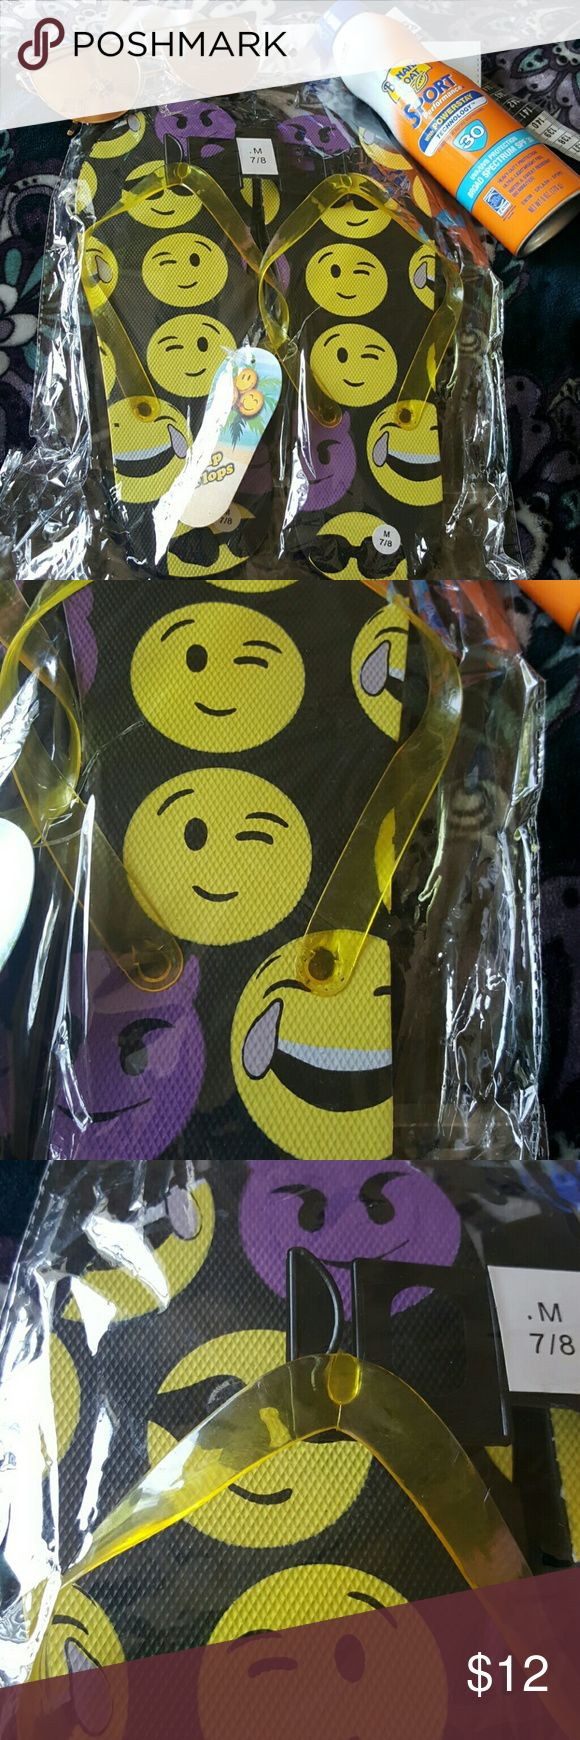 "Flip flop NEW Black w/emoji*s sz 7/8 medium Brand NEW in bag flip flops made of soft rubber. Background mostly black w Emoji*s..in yellow & purple. Sz 7/8 measures approx. 10"" tip of toe to heel .😎🤔😏😉🙁😒😞😔 Listing is for flip flops only. Flip Flop Shoes Sandals"